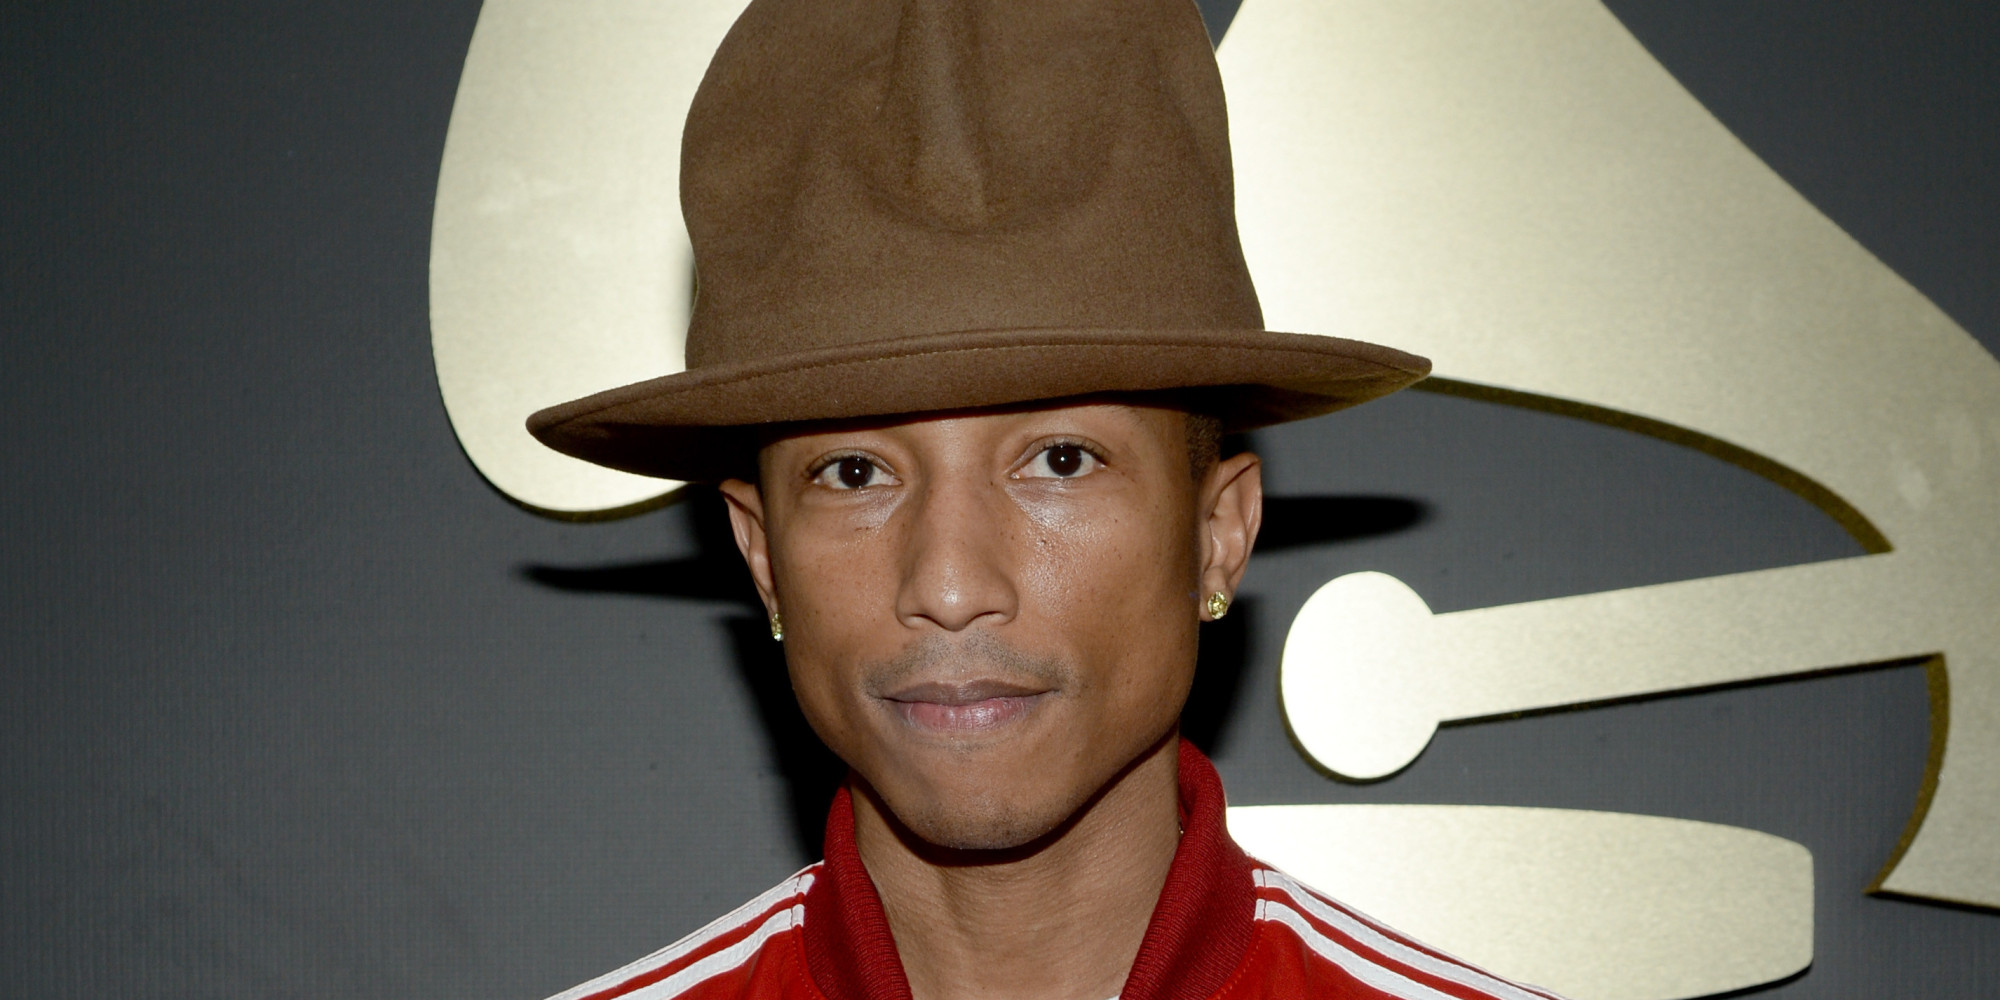 Pharrell Hat The Voice Pharrell Williams' Mountie Hat